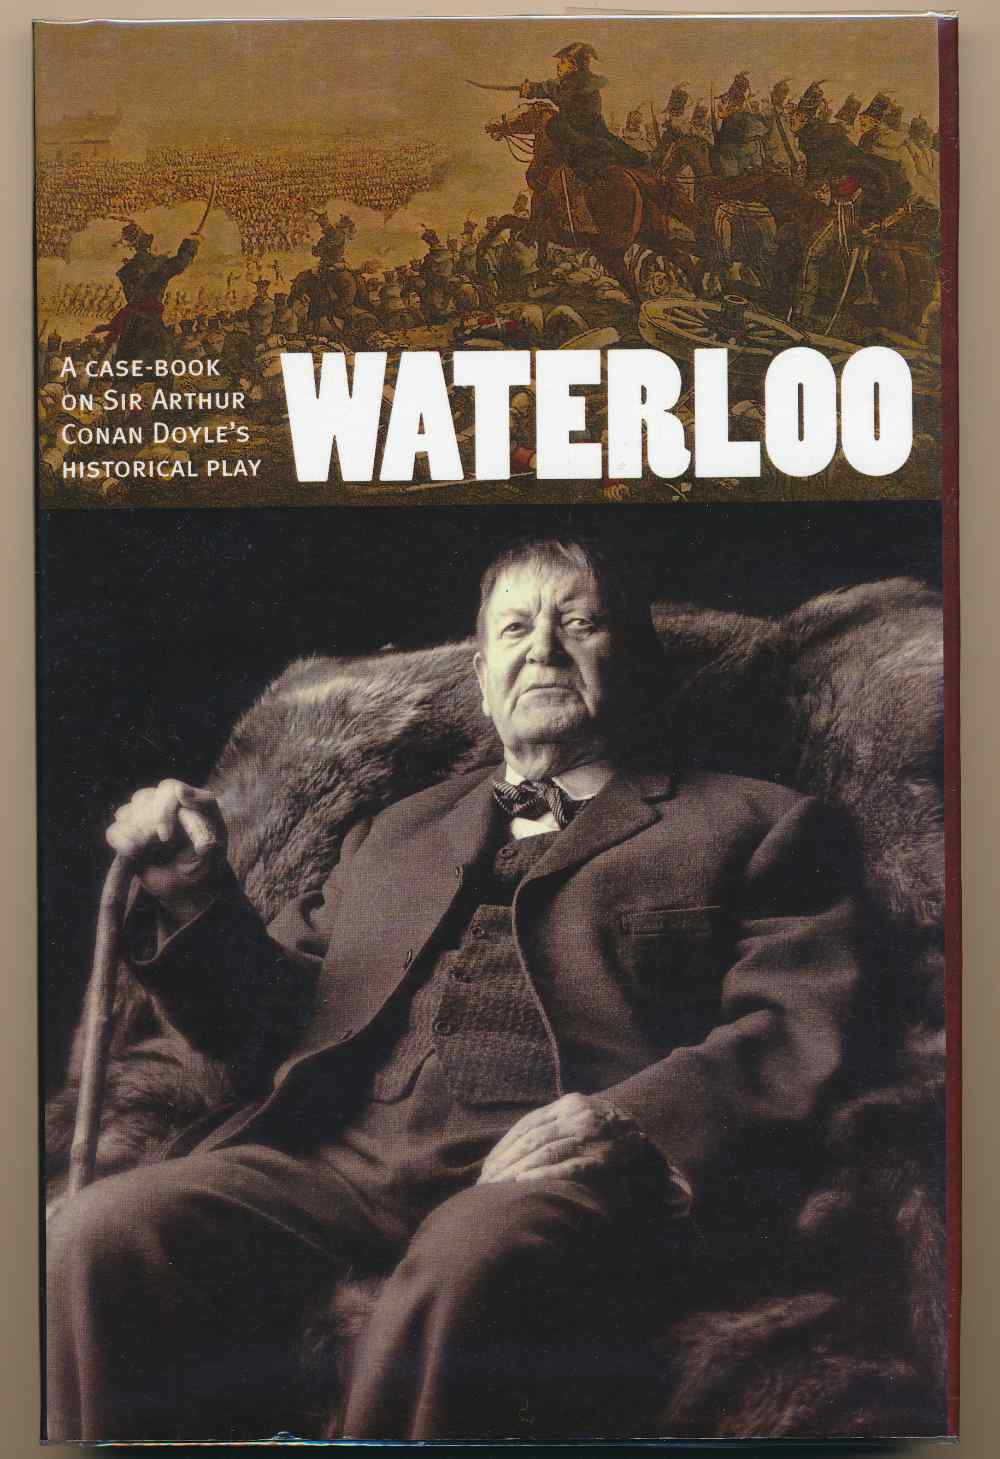 Waterloo : a case-book on Sir Arthur Conan Doyle's historical play